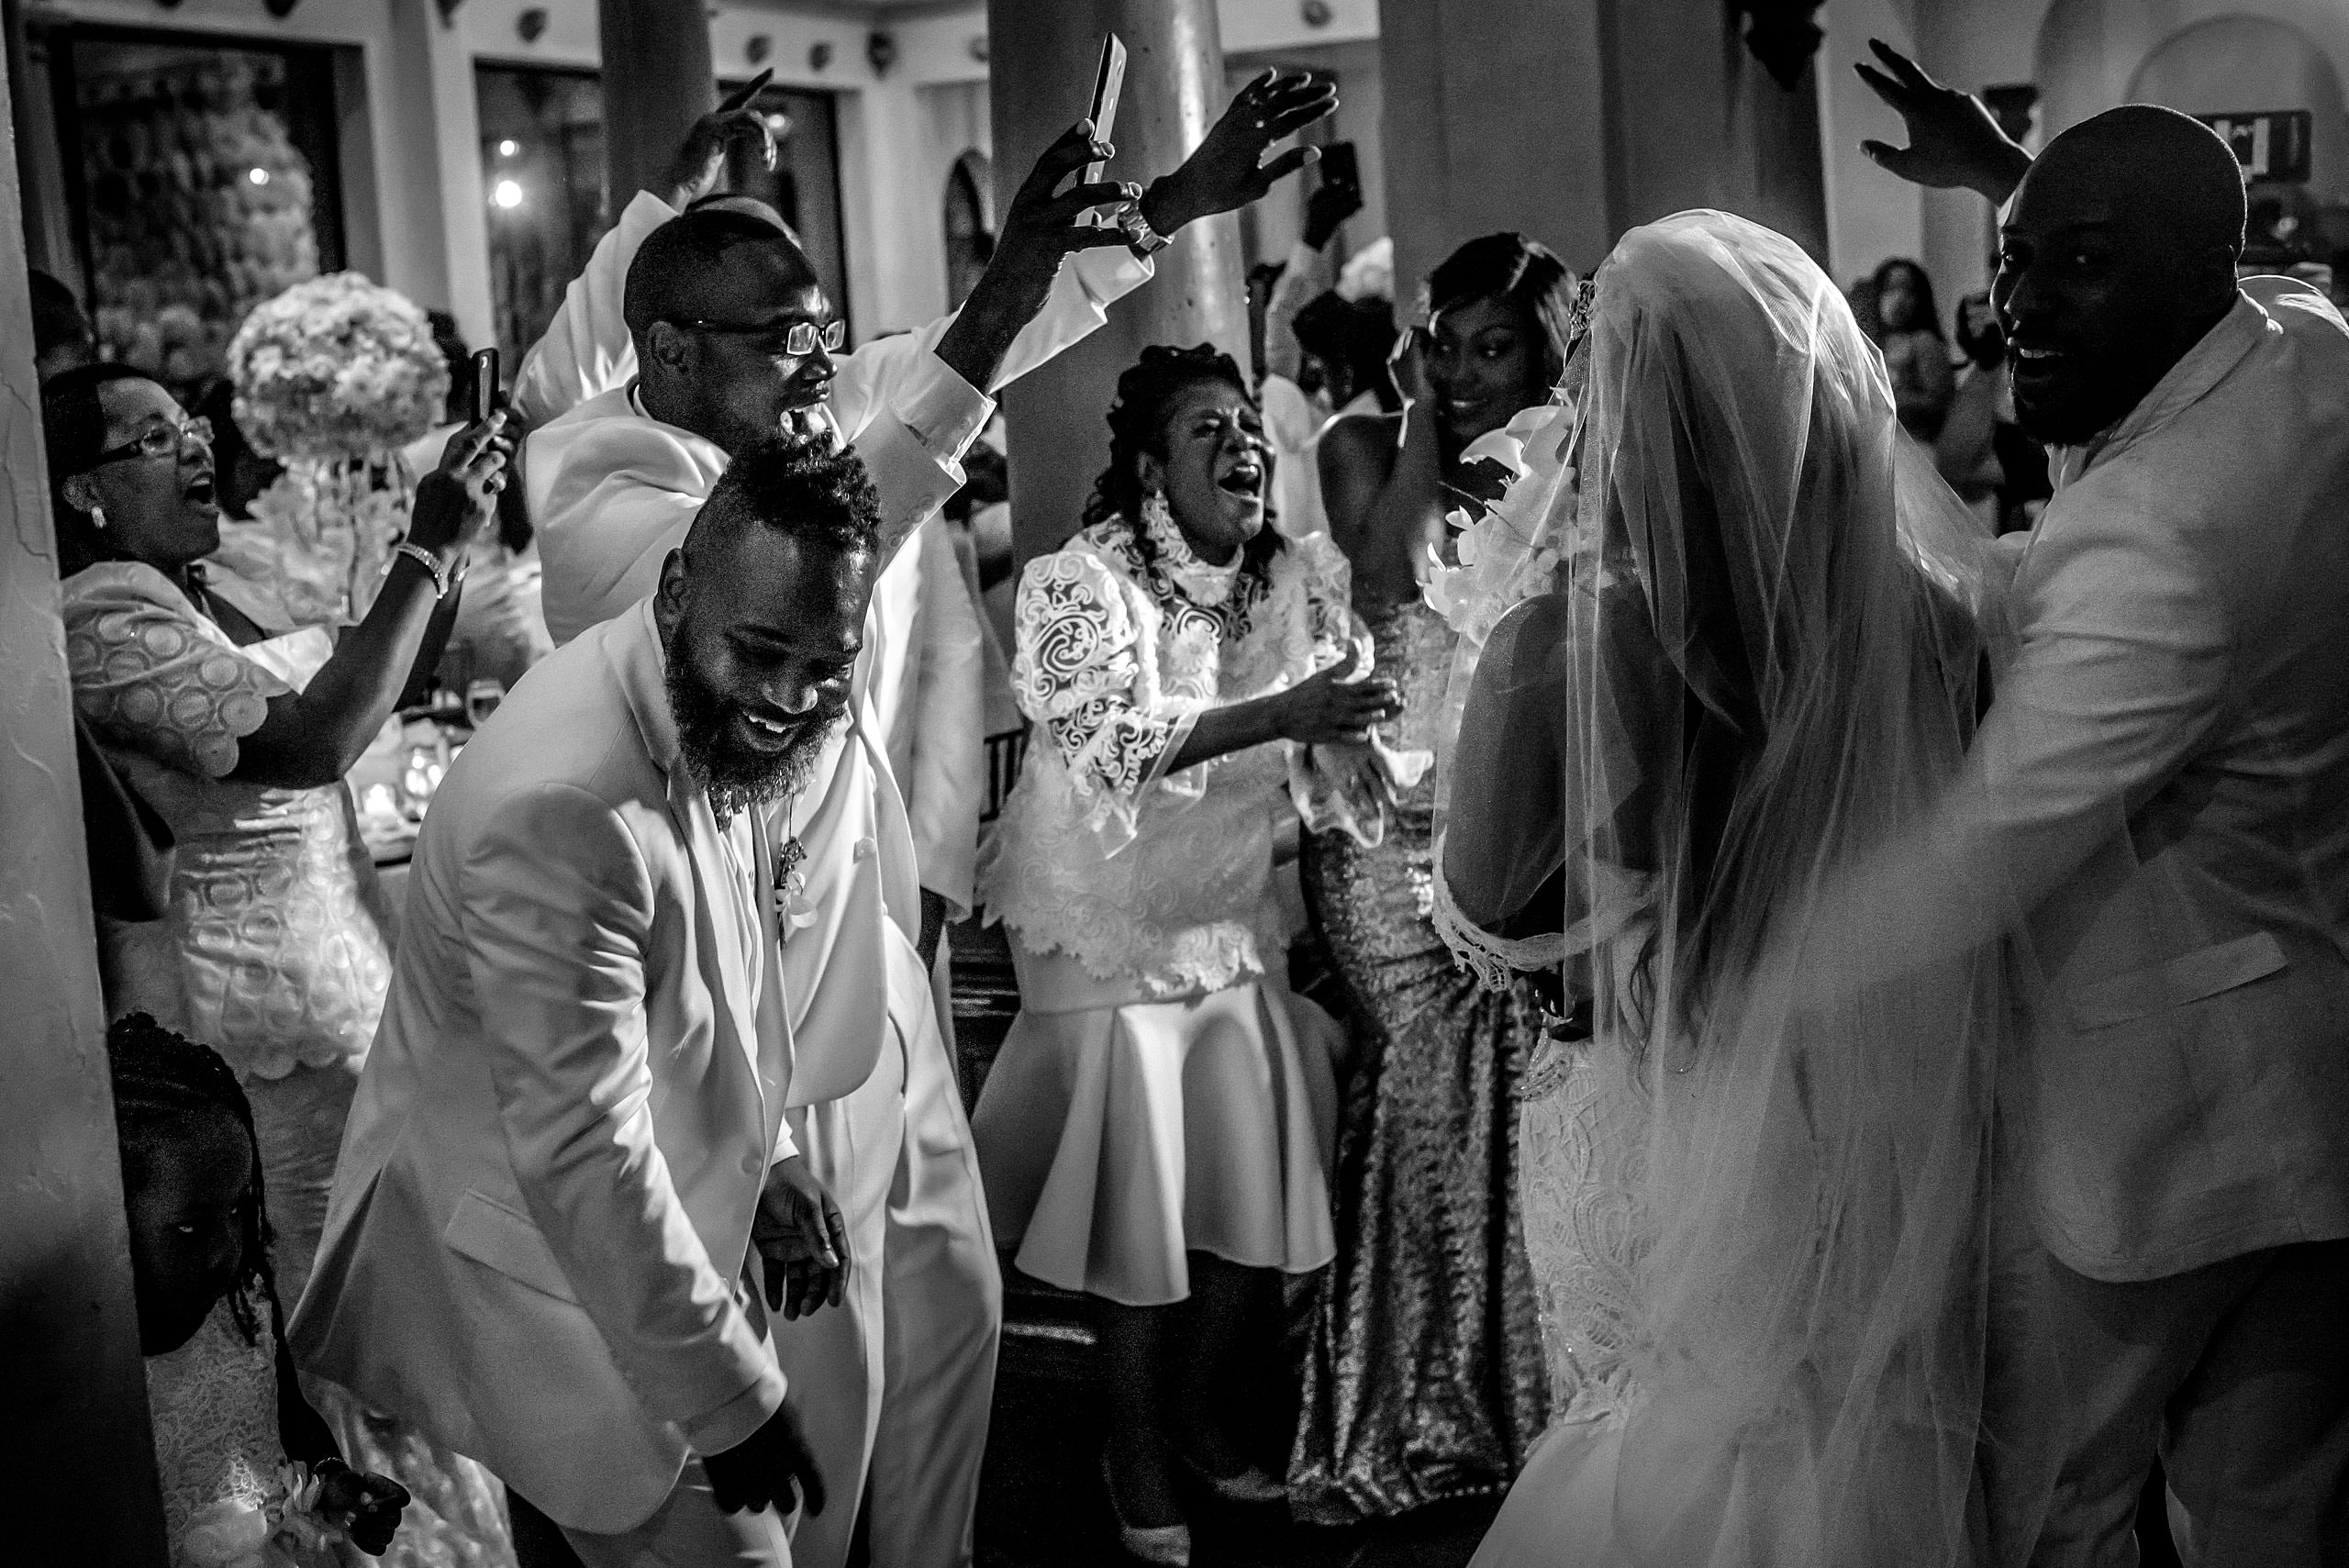 guests celebrating as a bride and groom enter the reception at Zephyr Palace Destination Wedding in Costa Rica by Sean LeBlanc